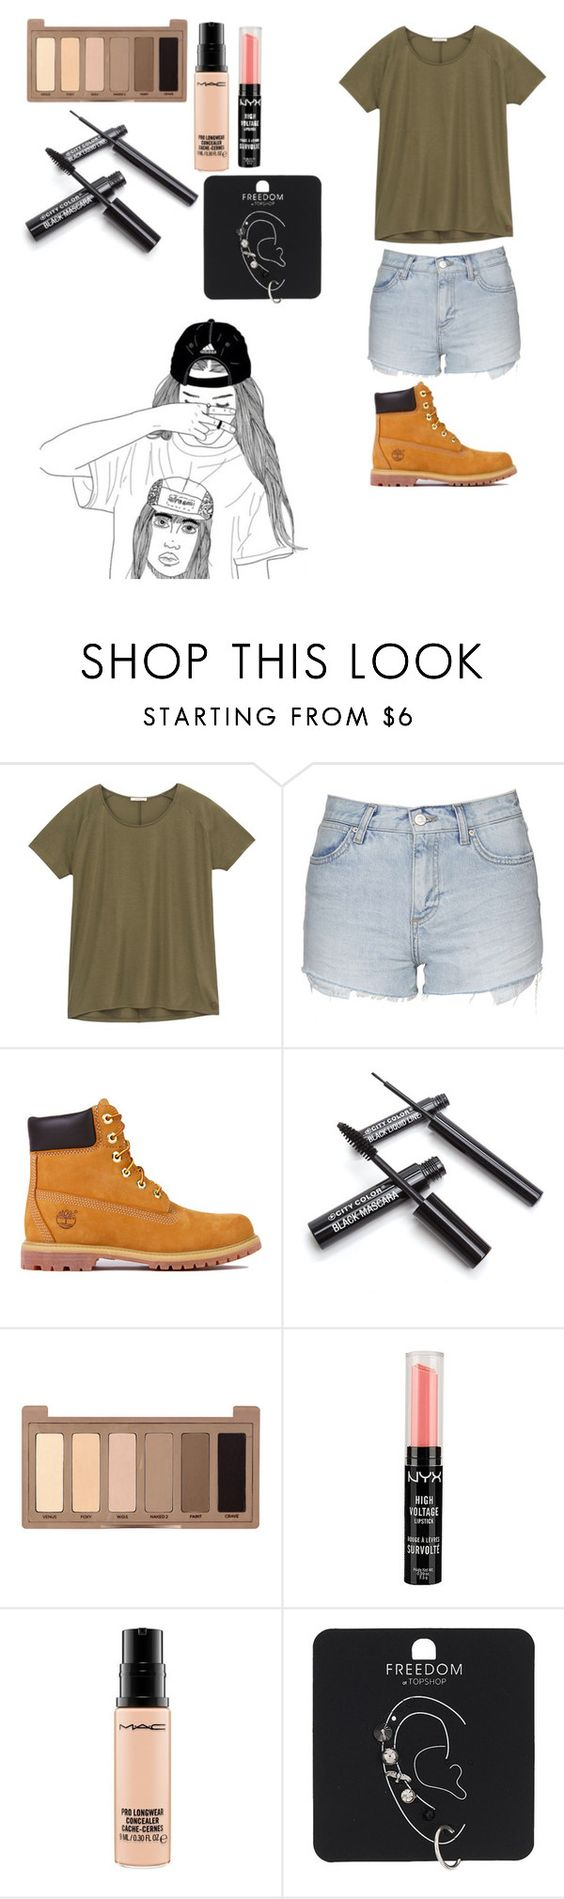 """""""Untitled #173"""" by meow1104 ❤ liked on Polyvore featuring Lee, Topshop, Timberland, Urban Decay, NYX and MAC Cosmetics"""